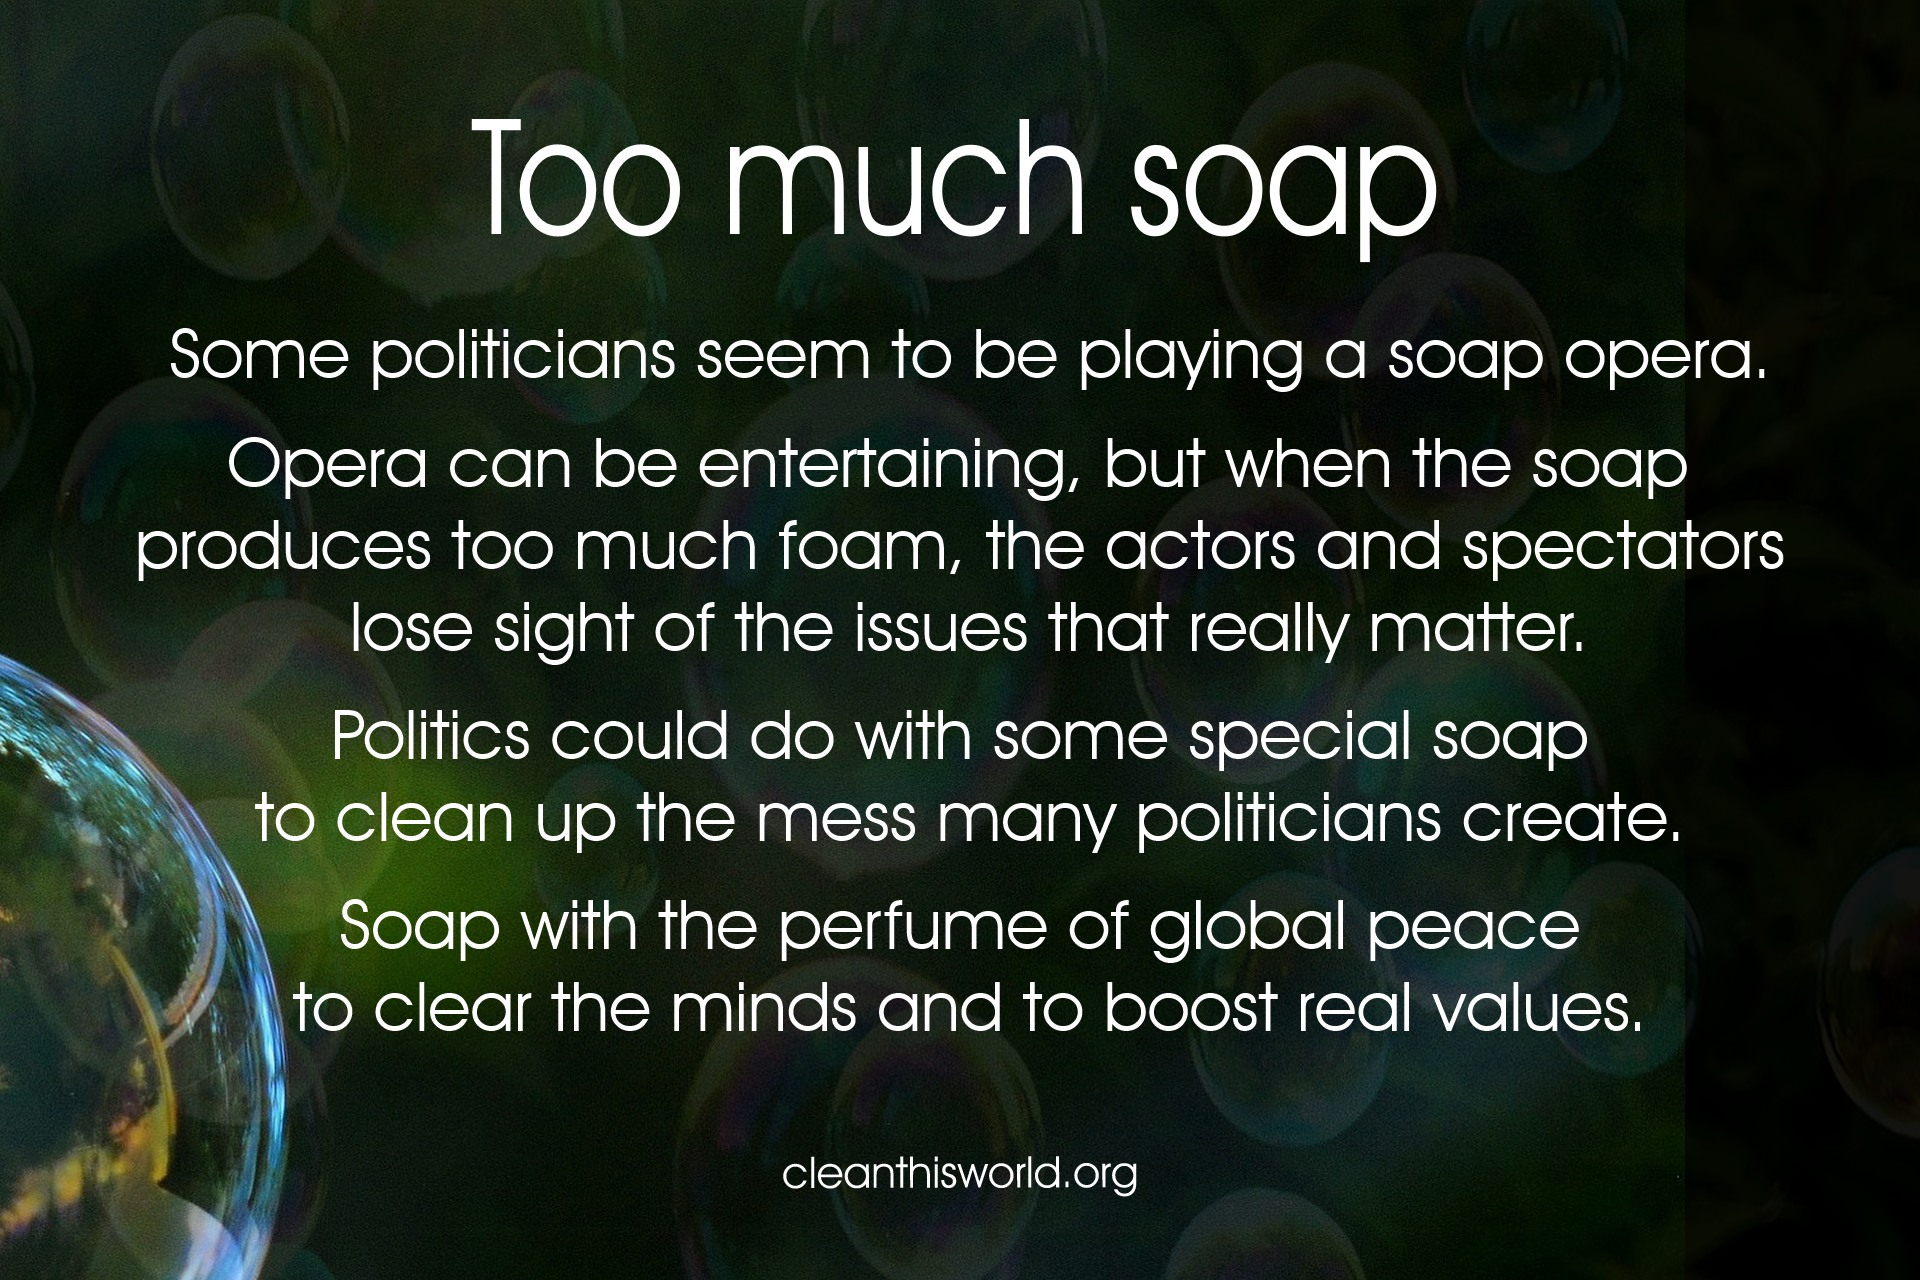 Too much soap